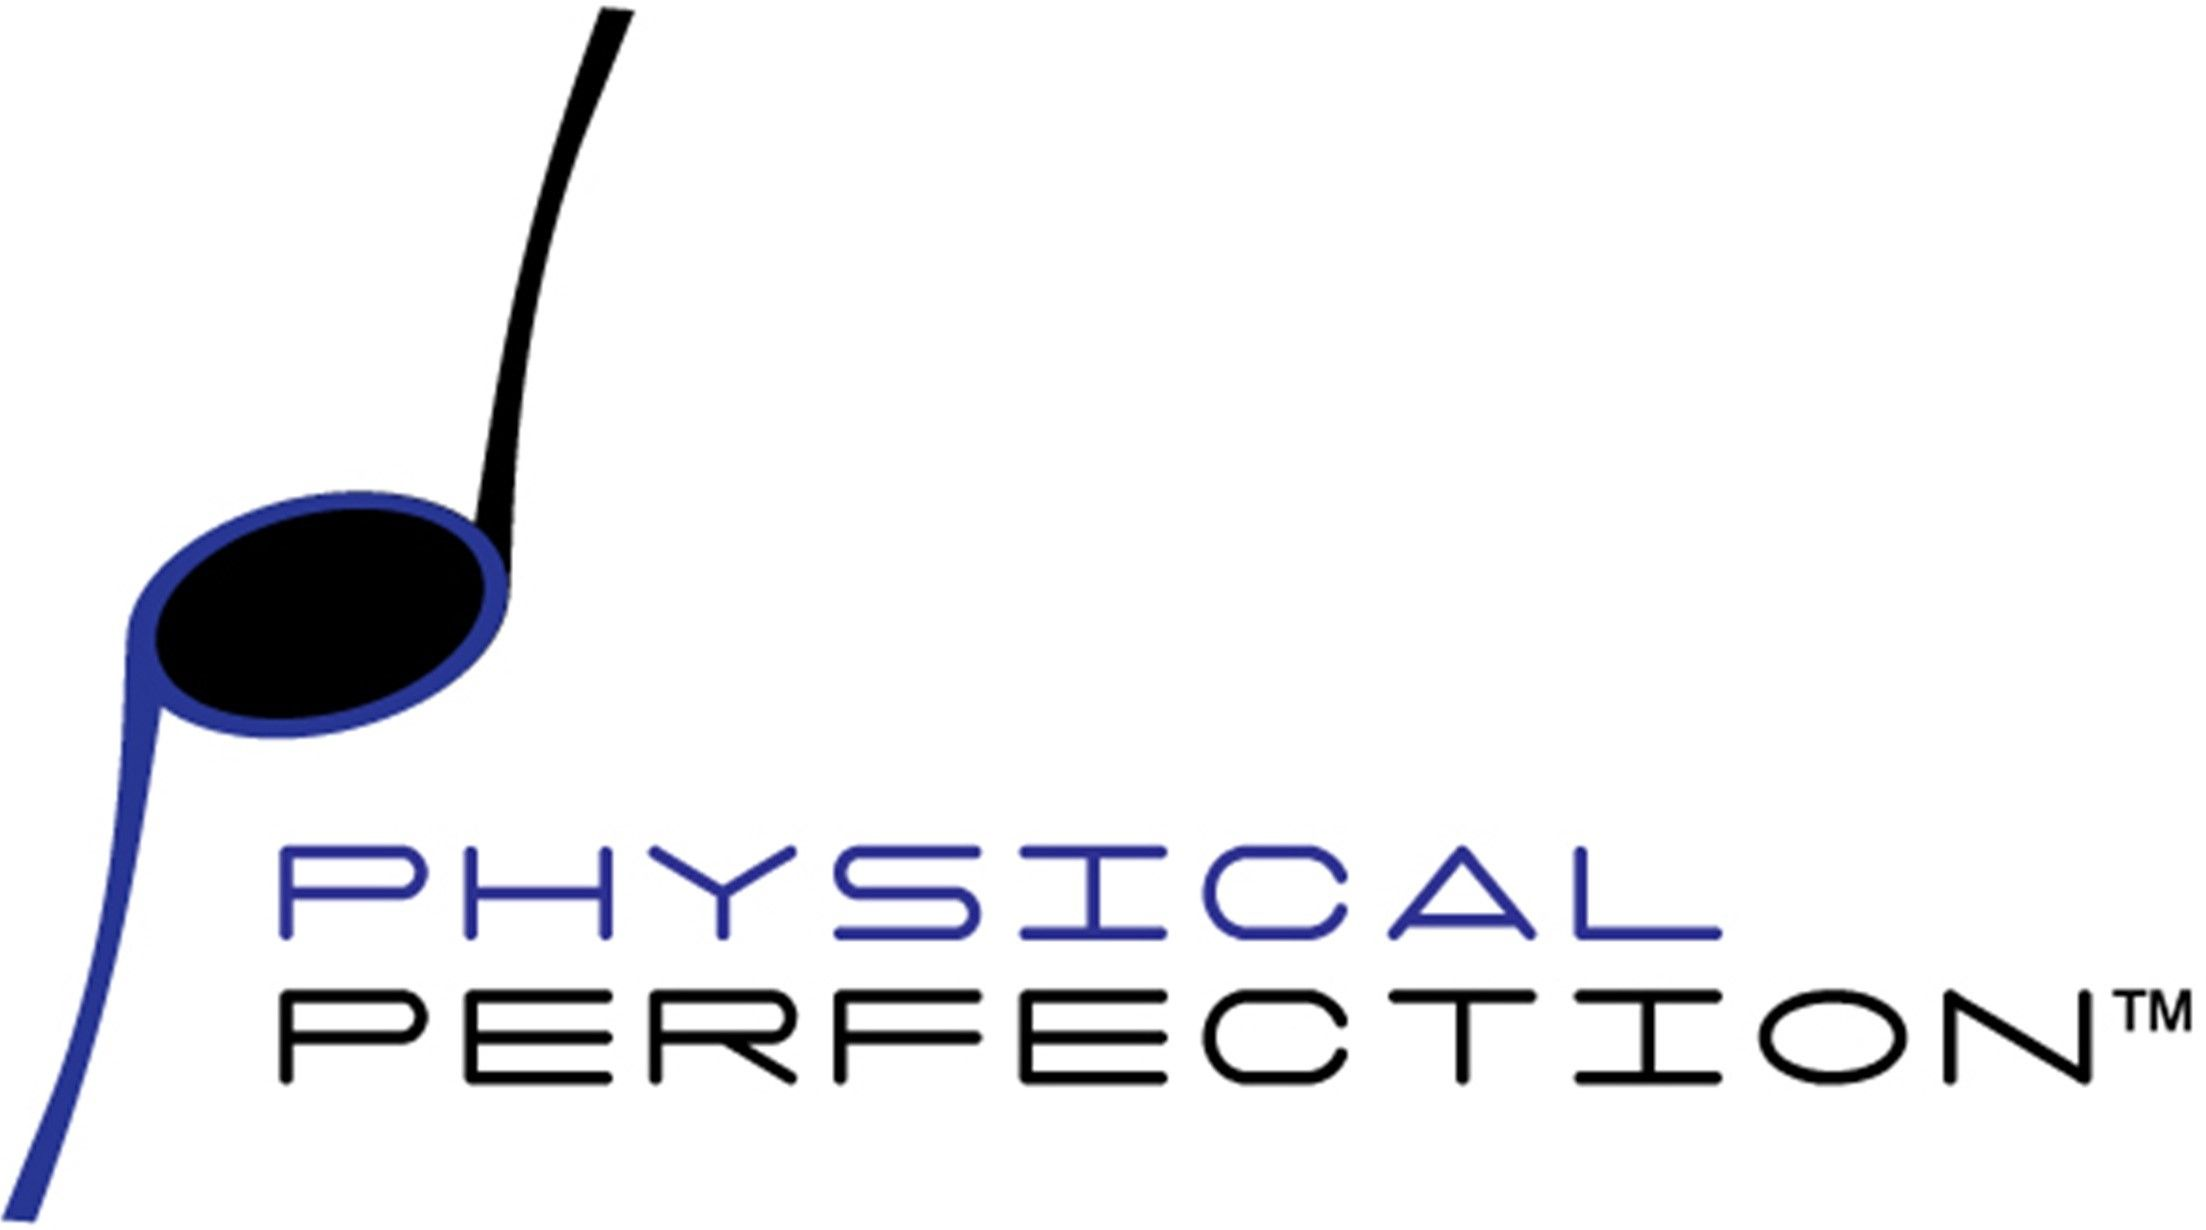 Physical Perfection, Incorporated